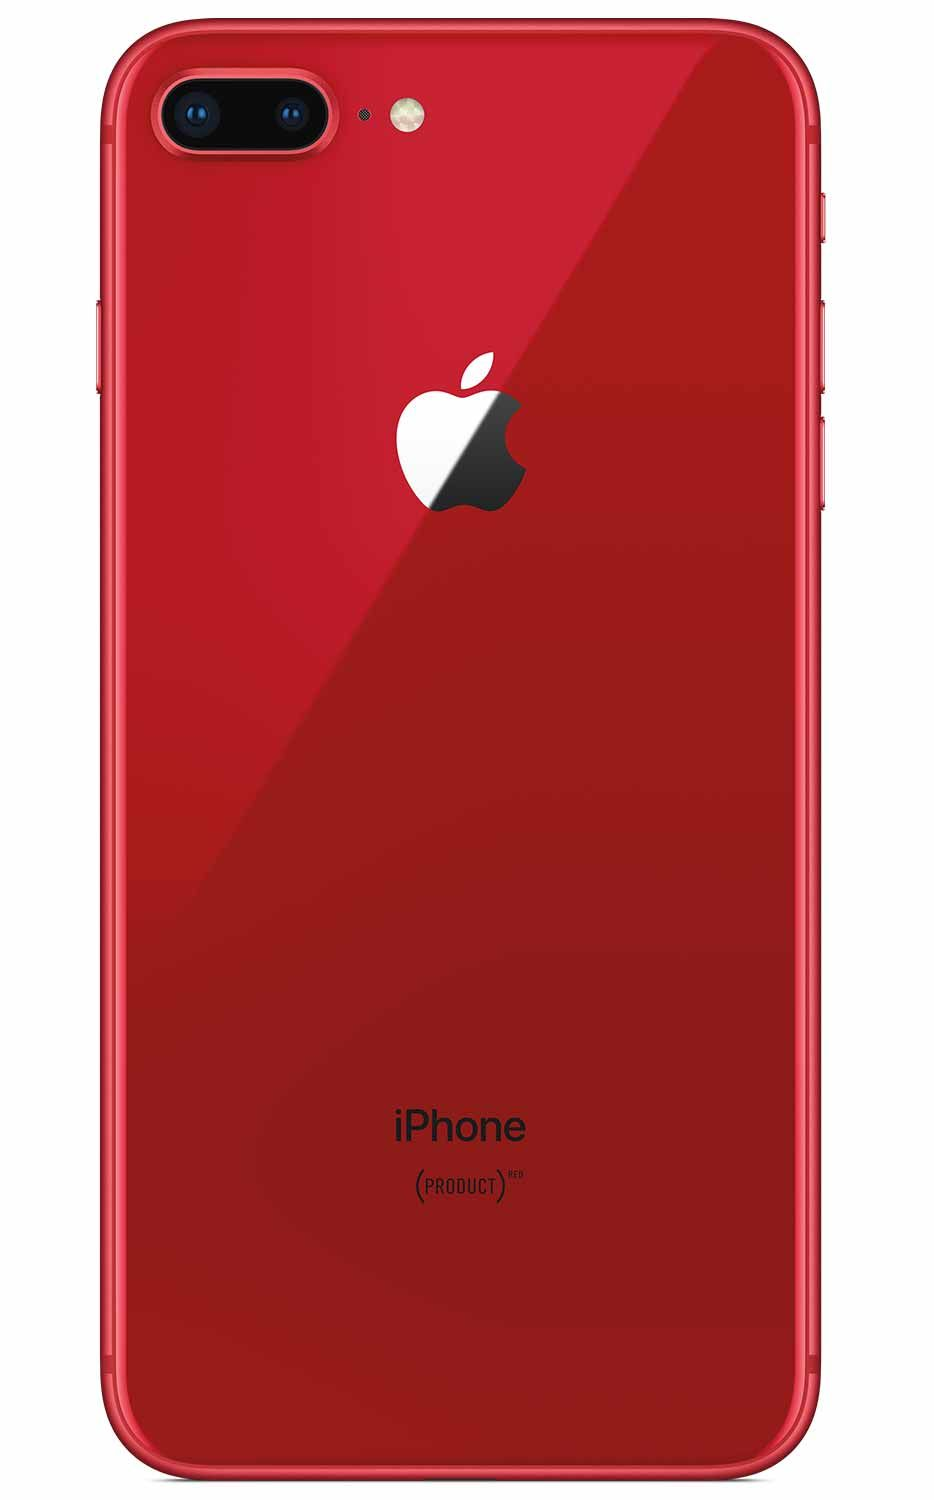 Apple iphone 8 plus productred iphone apple iphone